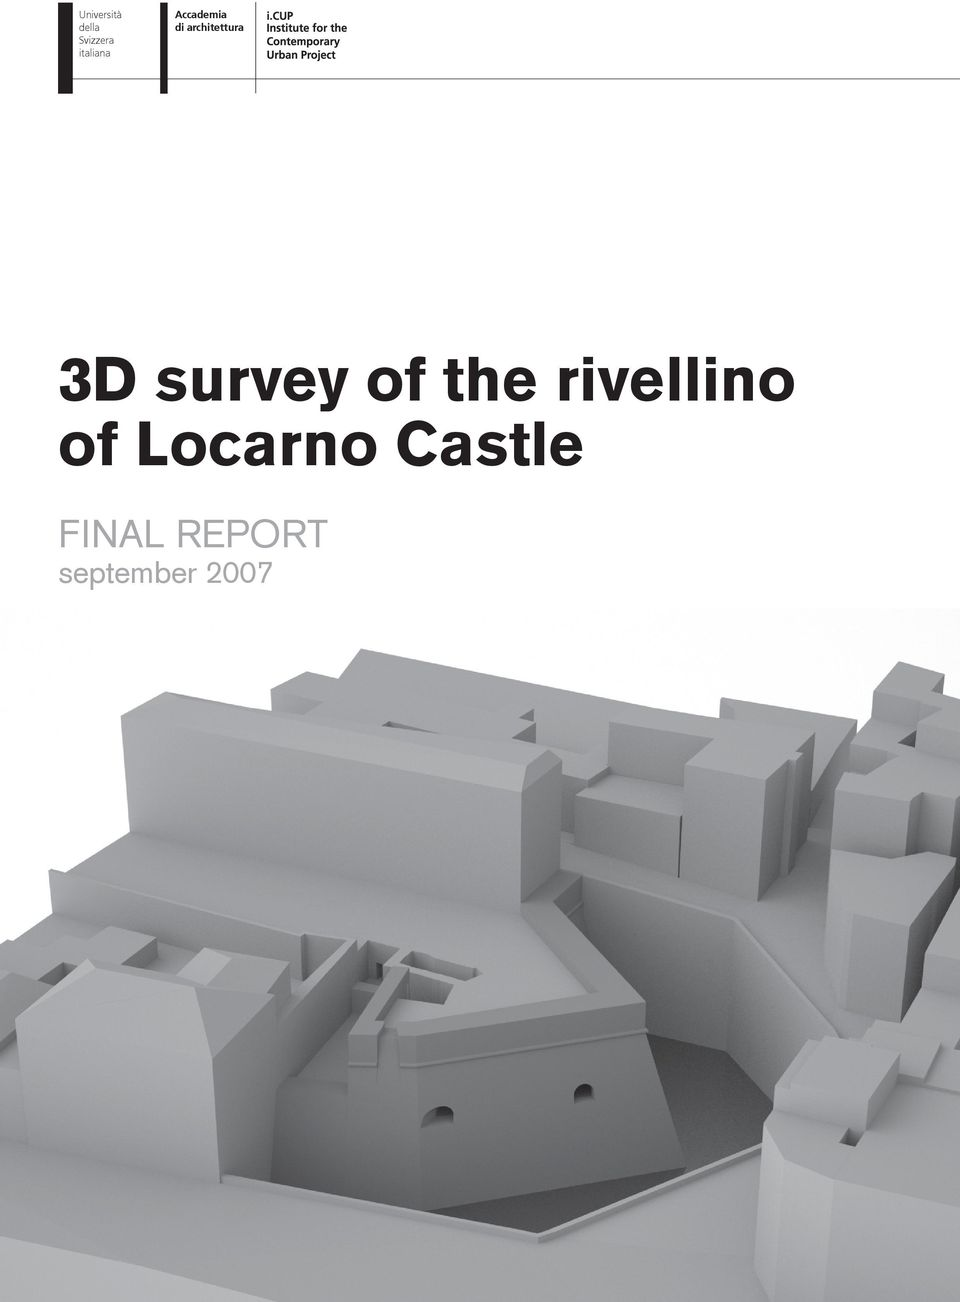 architettura 3D survey of the